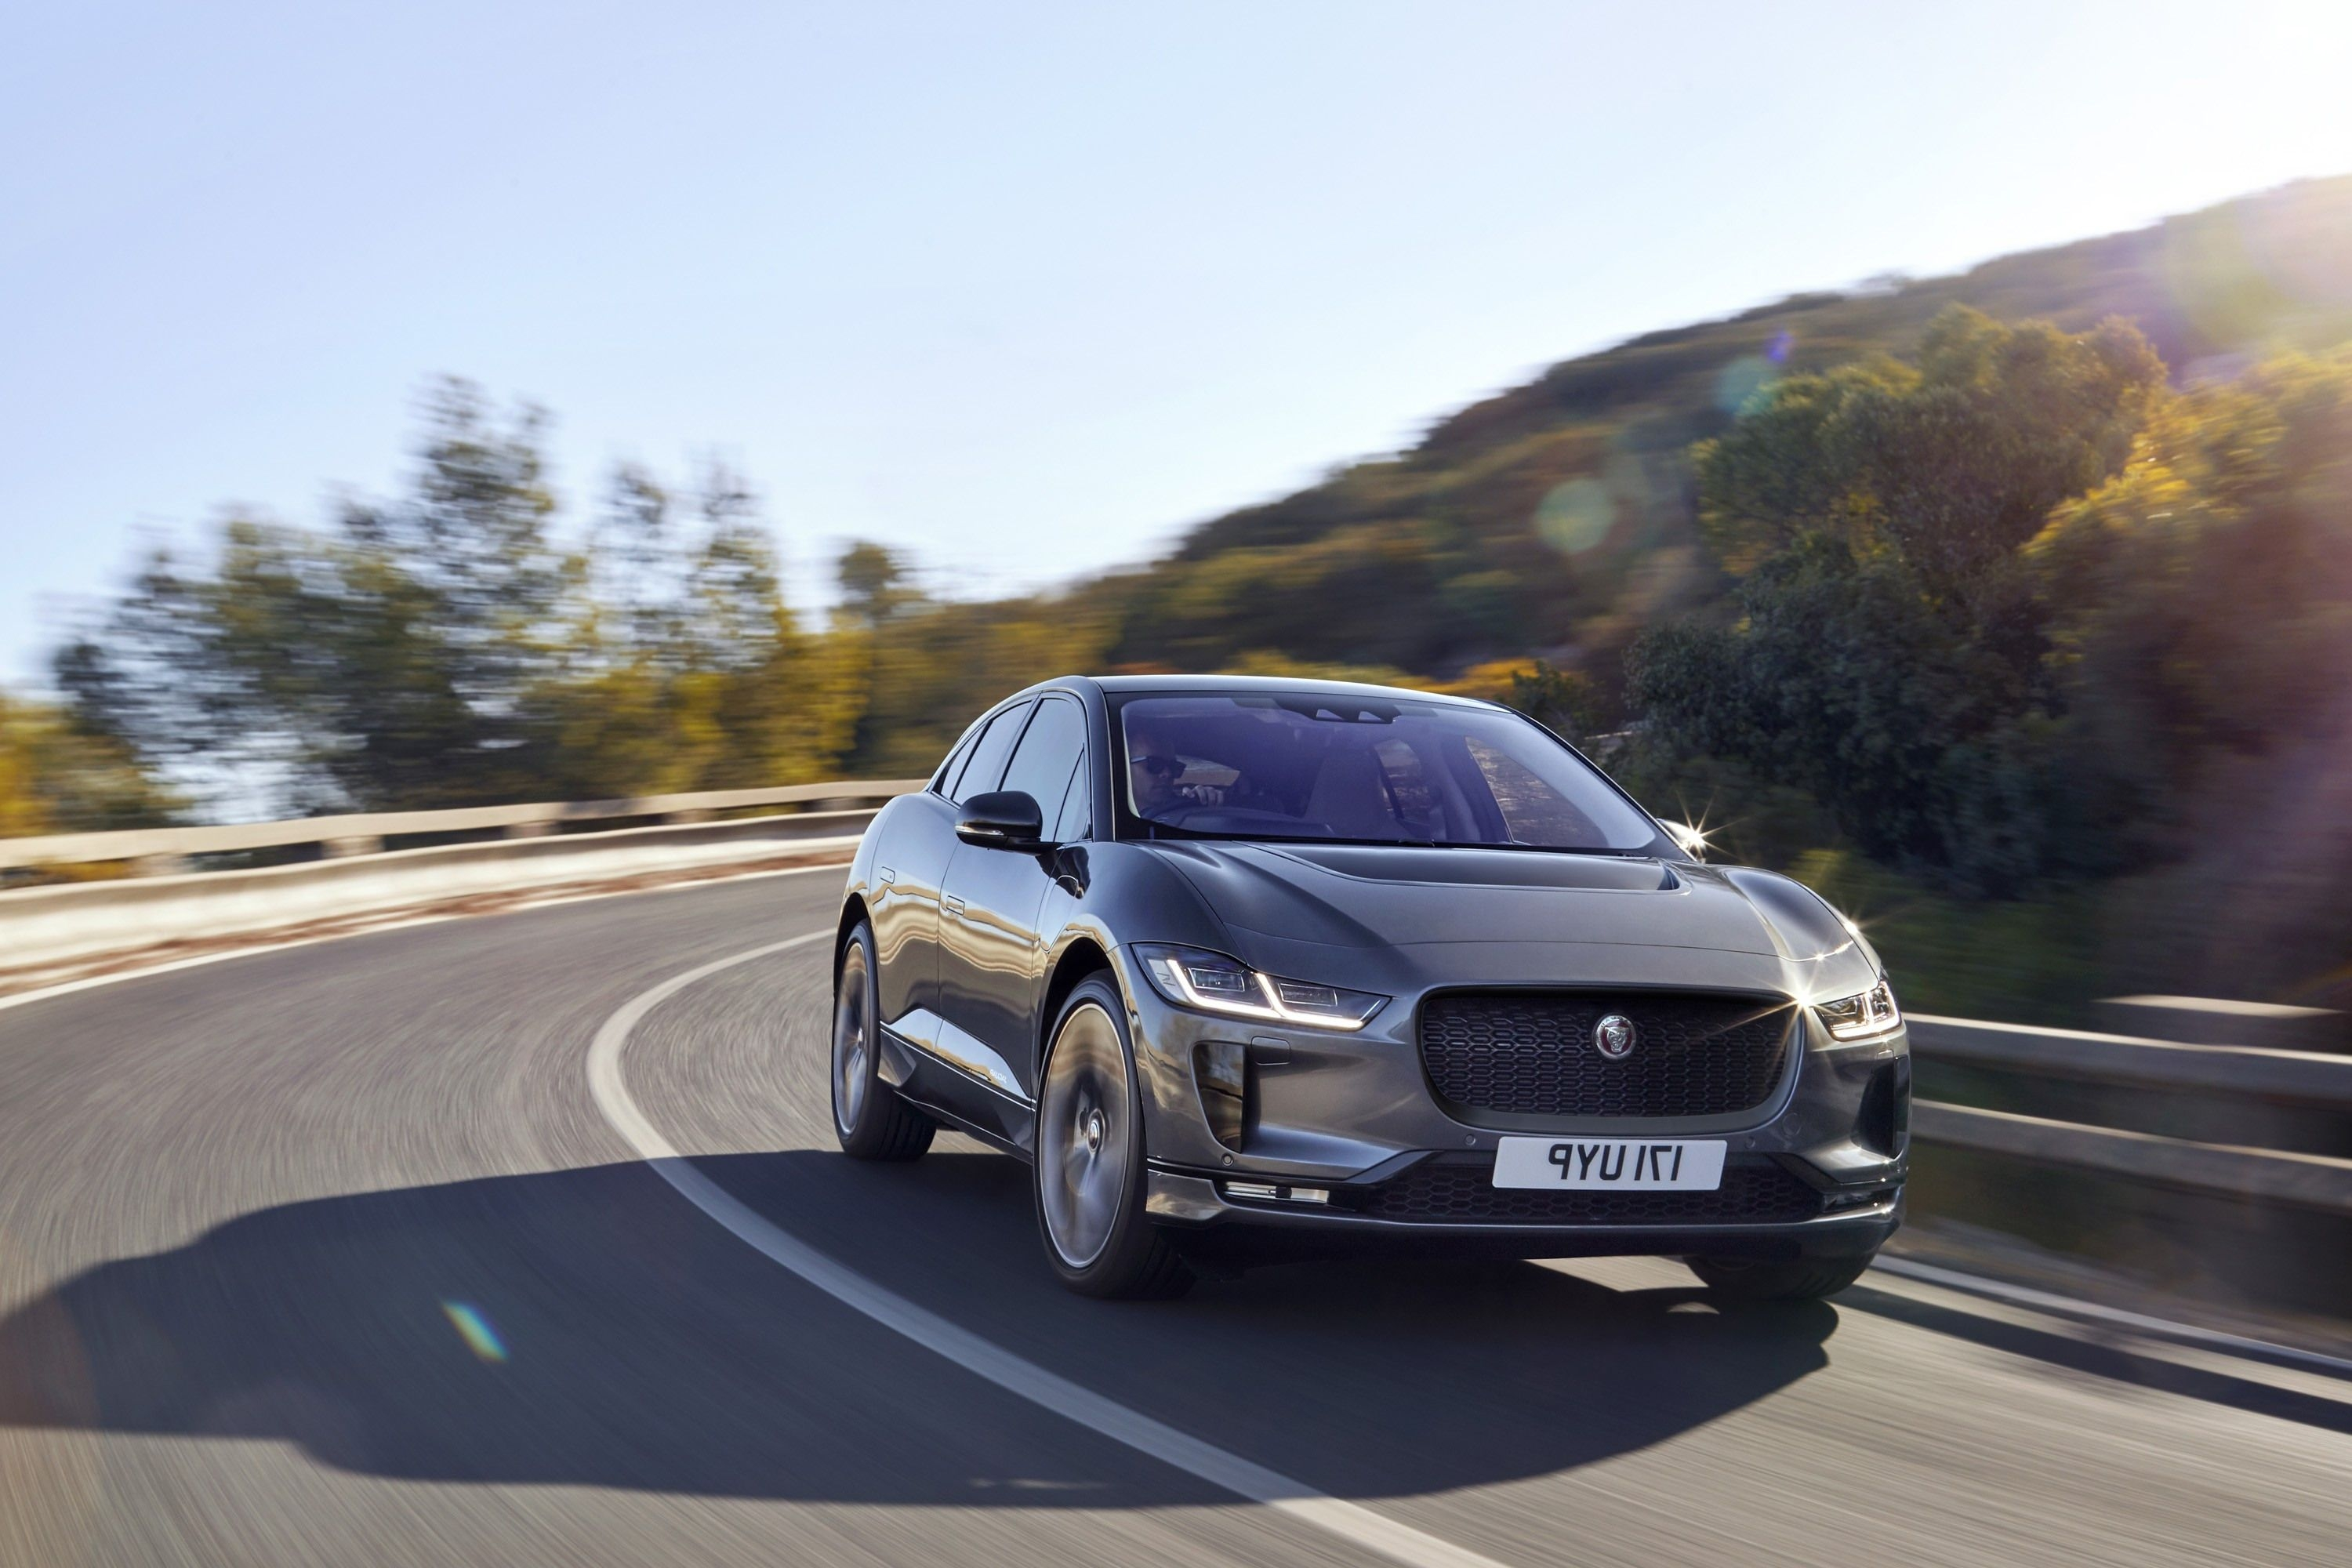 48 The Best 2019 Jaguar Xq Crossover Spy Shoot